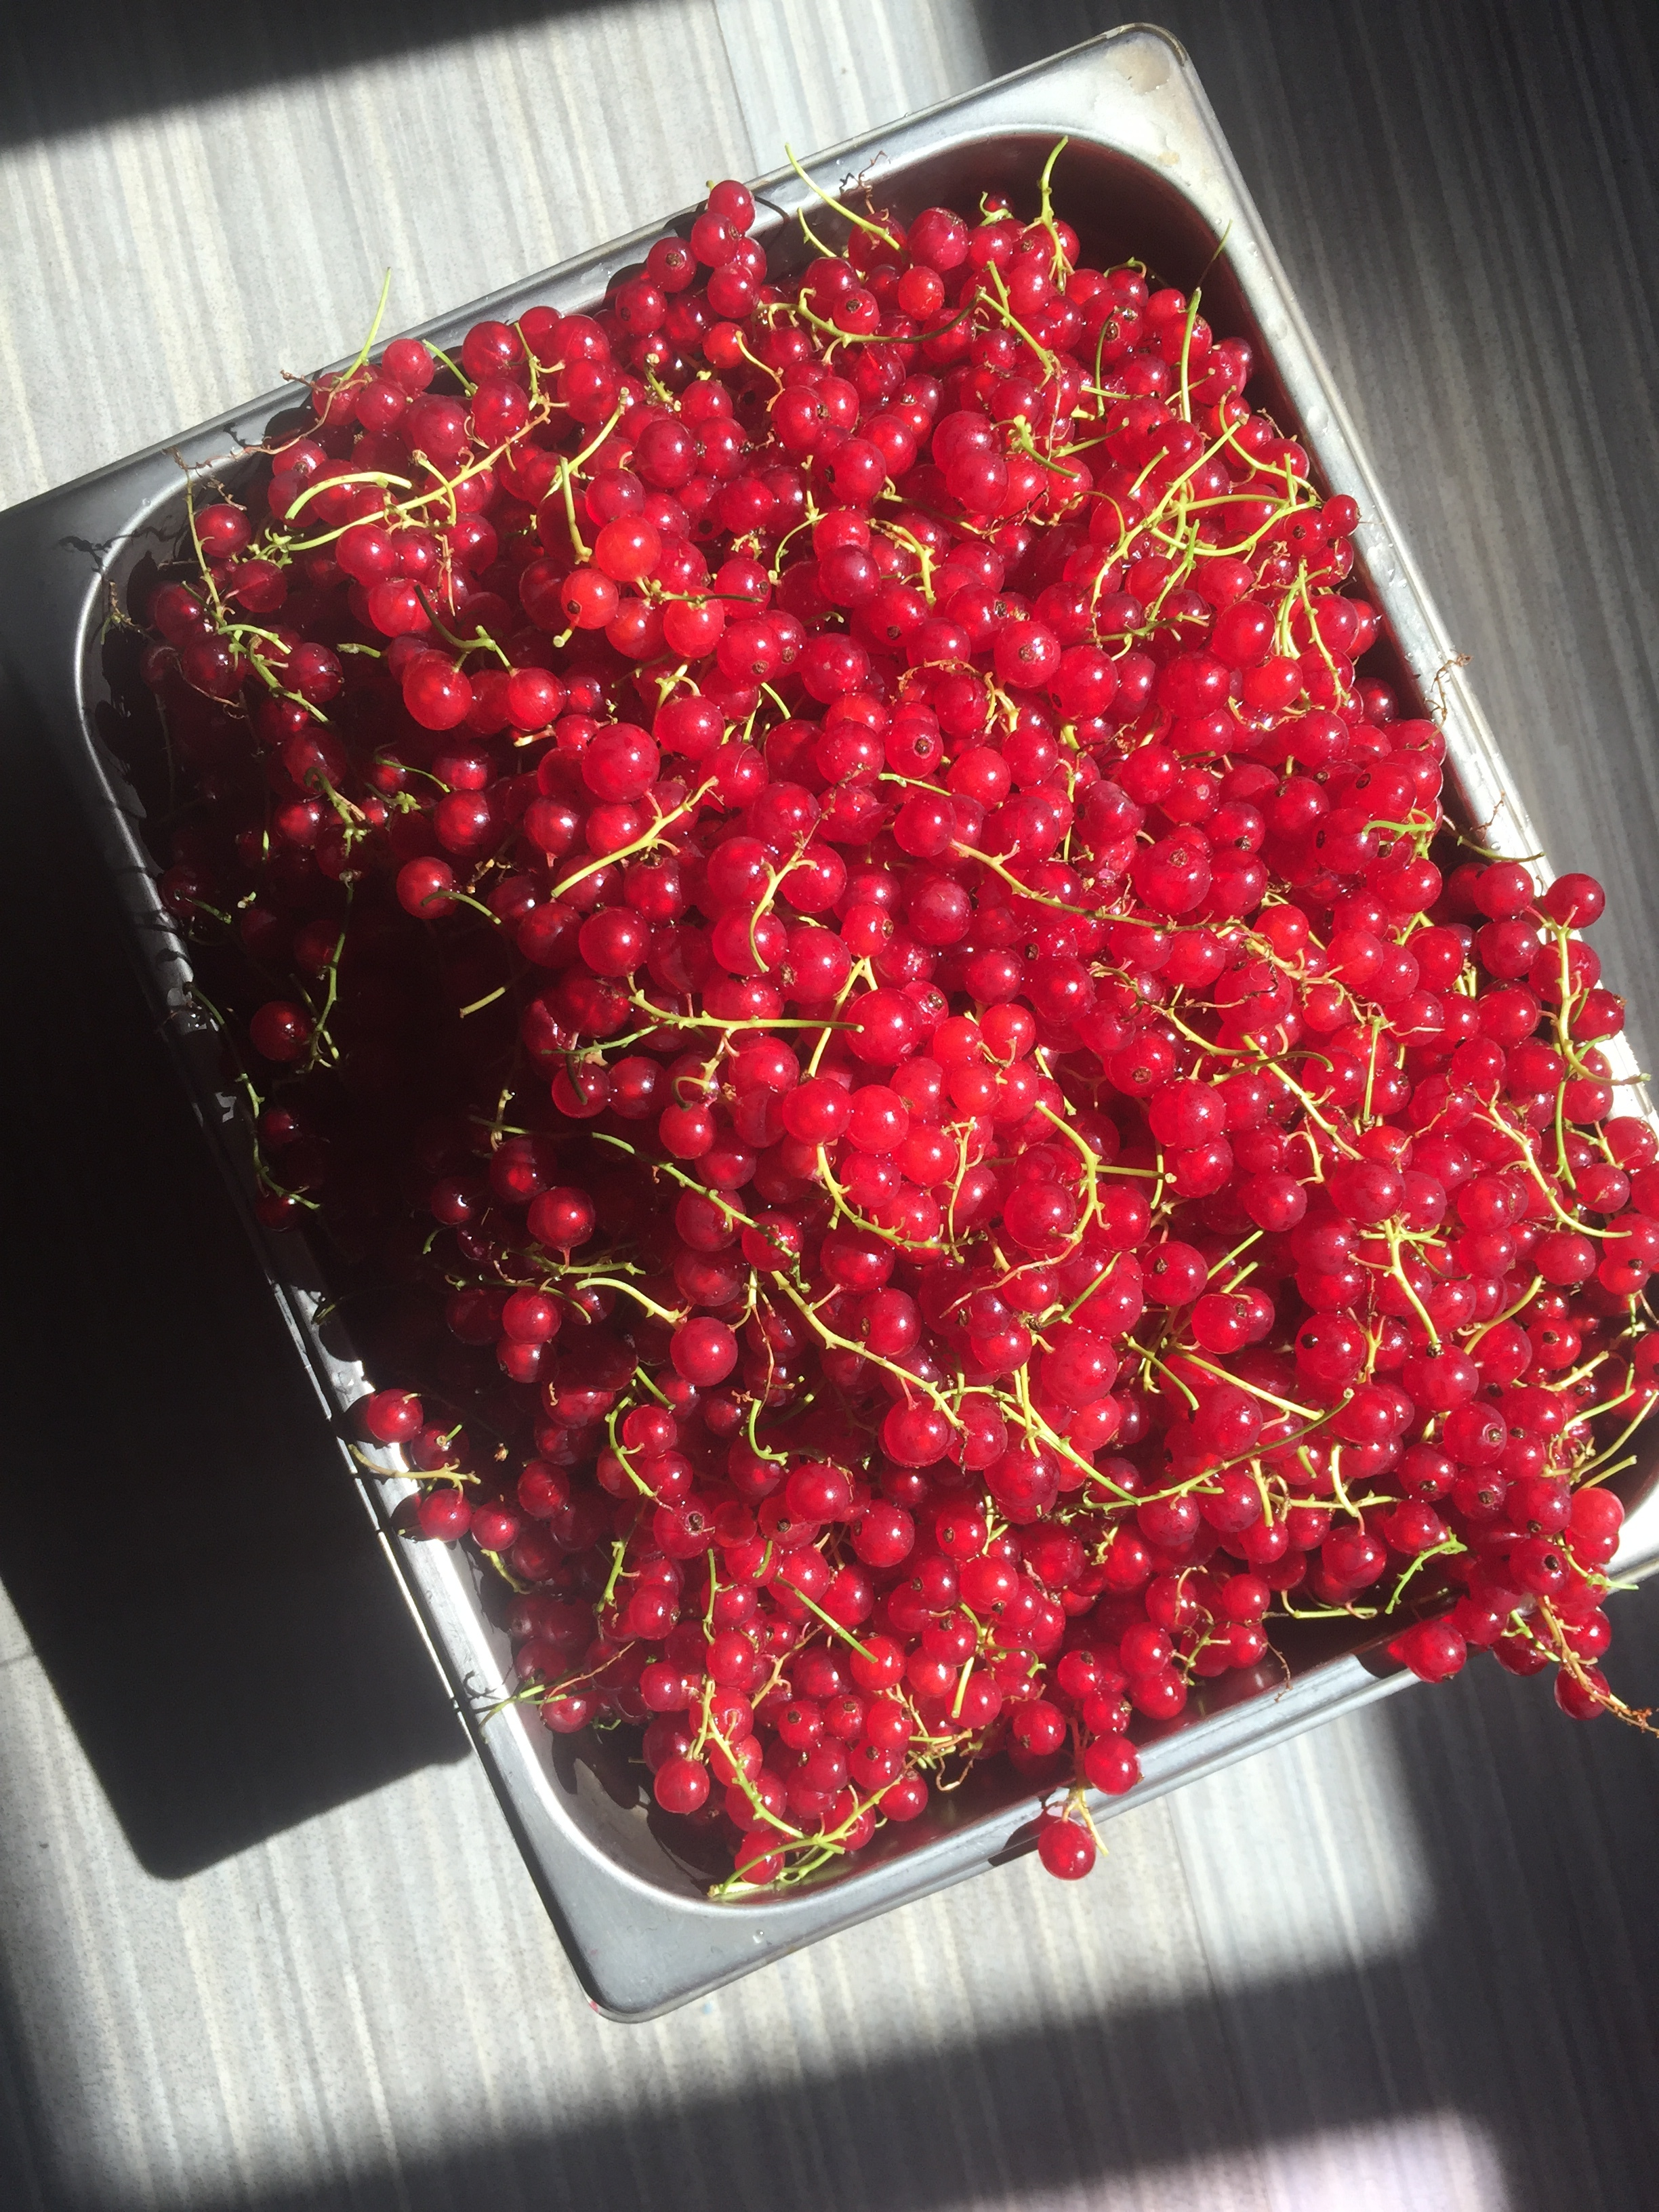 These currants are some of the most visually stunning fruit to work with each summer.